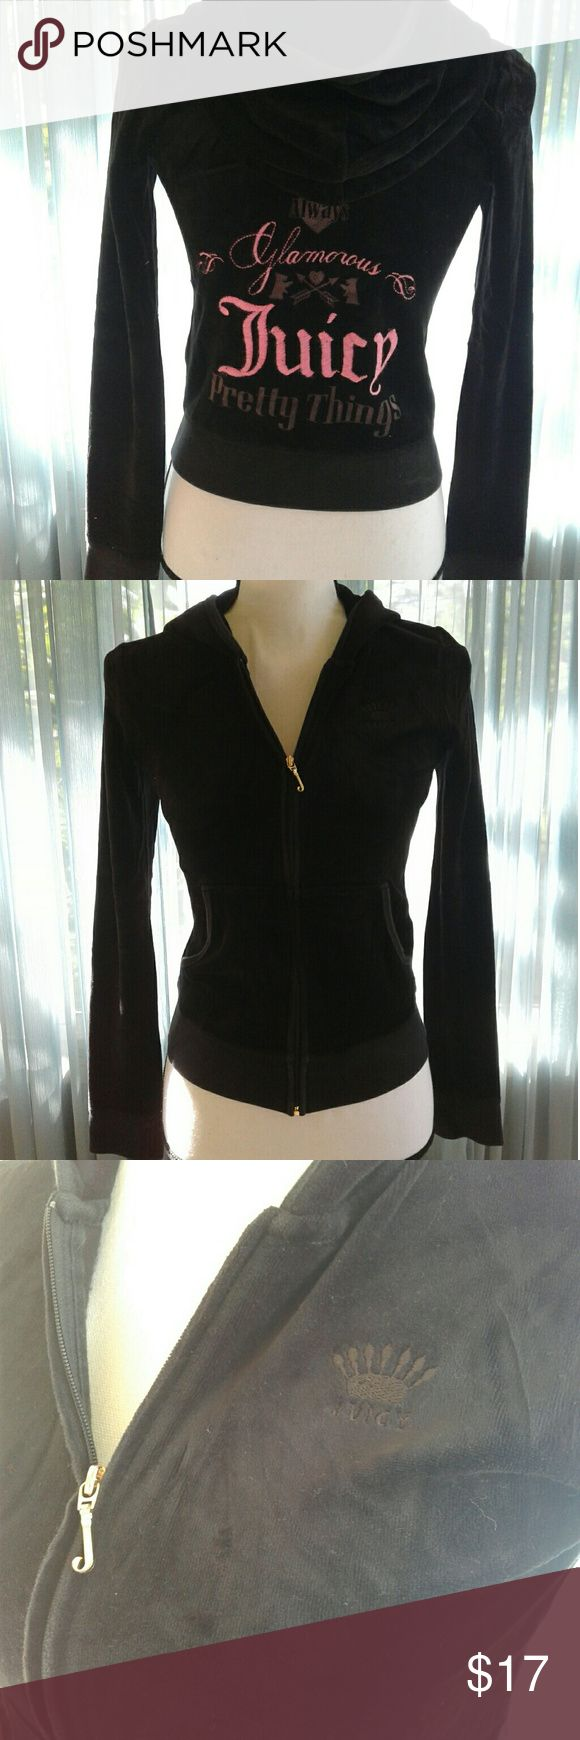 """Juicy couture velour hoodie Women's very gently pre loved black velour juicy couture hoodie with beautiful pink juicy logo on back. Size tag is missing with tiny hole, Please see pictures. fits XSmall. Measurements chest 17"""" length 20"""". Thanks for looking! Bundle to save!! Juicy Couture Tops Sweatshirts & Hoodies"""